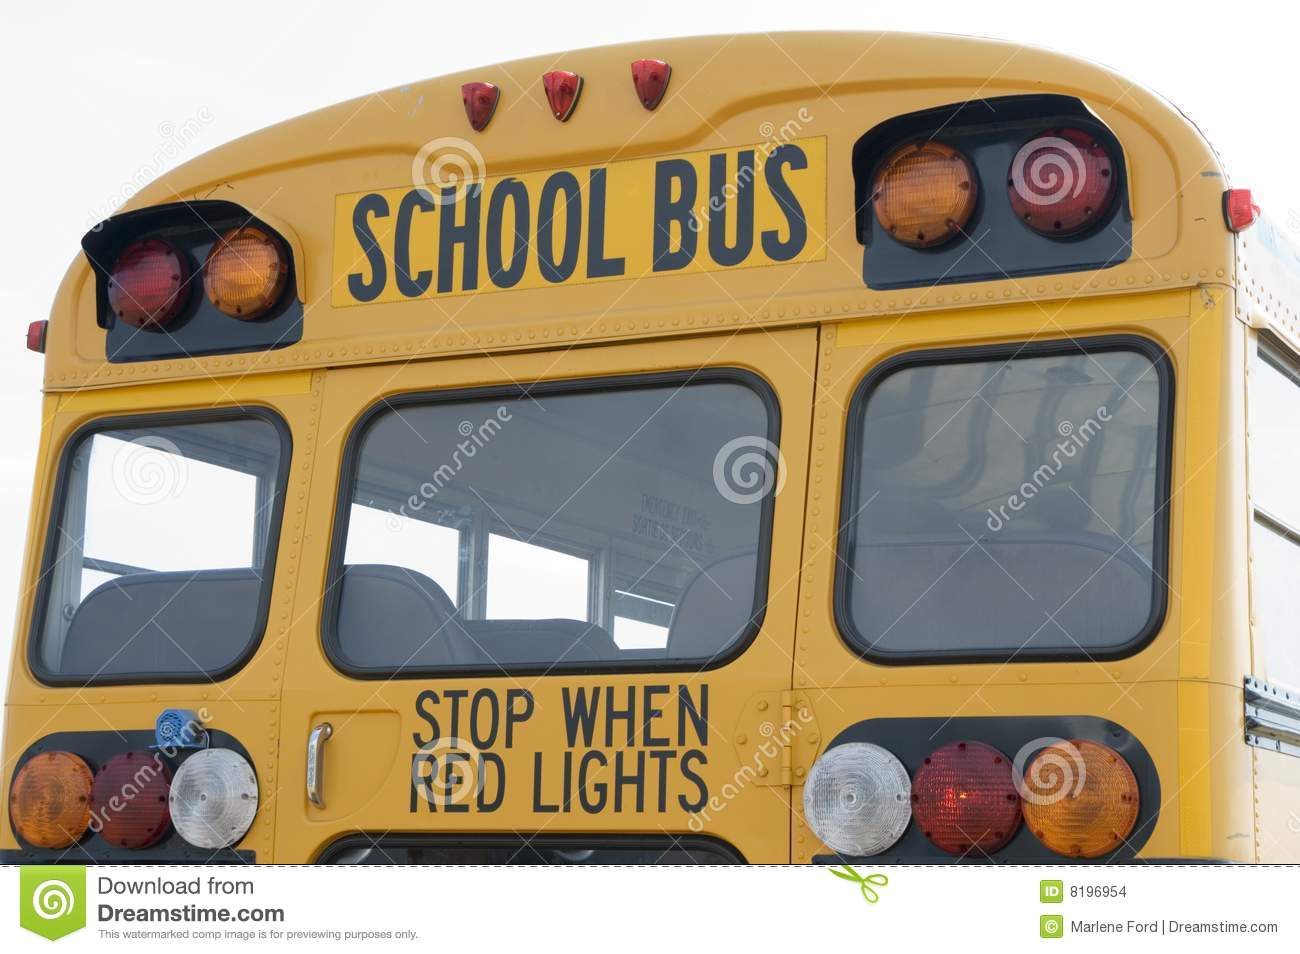 School bus flashing yellow light clipart freeuse download School Bus Front End Clipart - Clipart Kid freeuse download